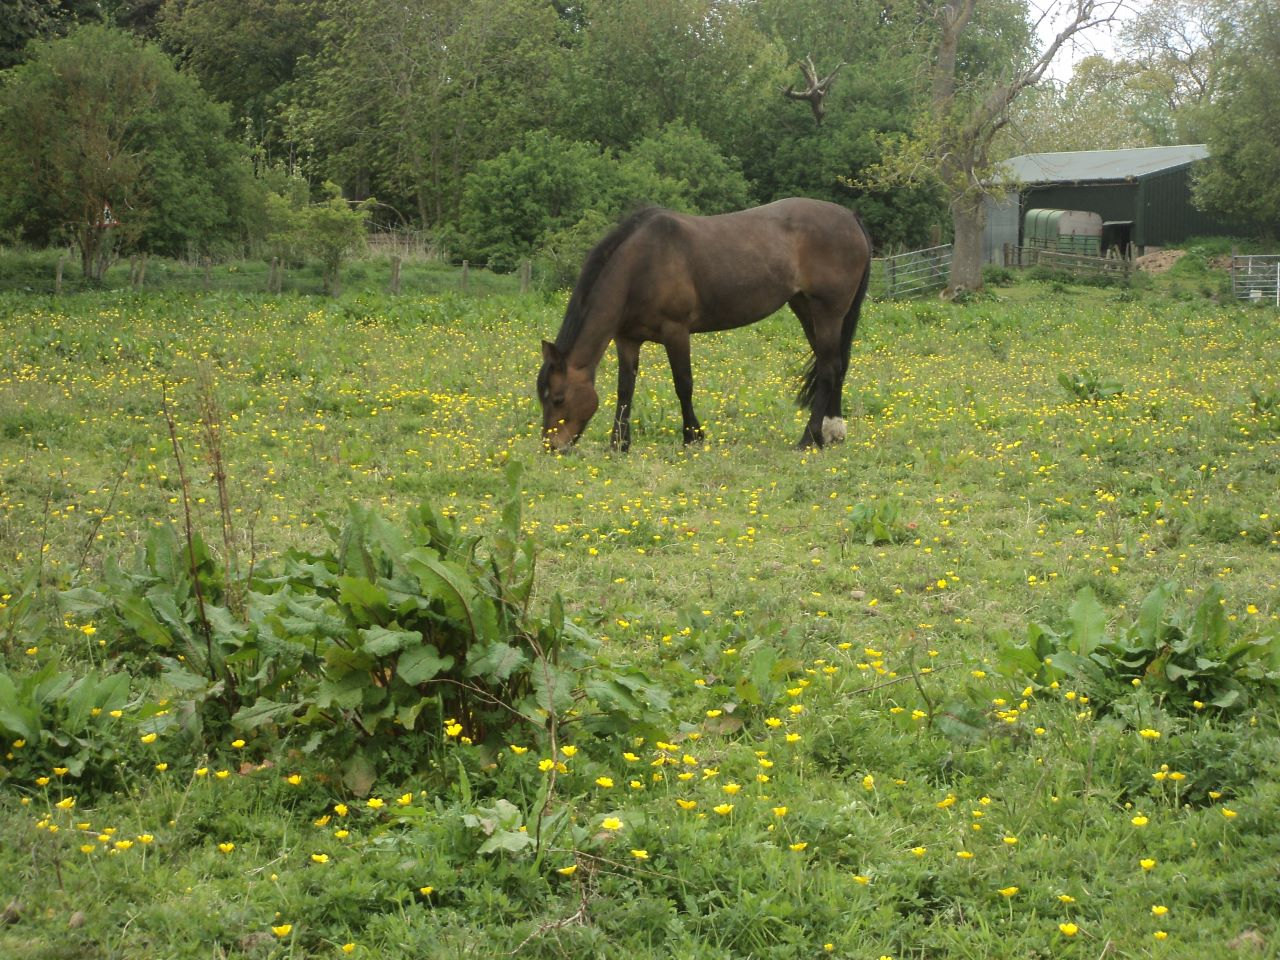 Get rid of weeds in horse paddocks for good.